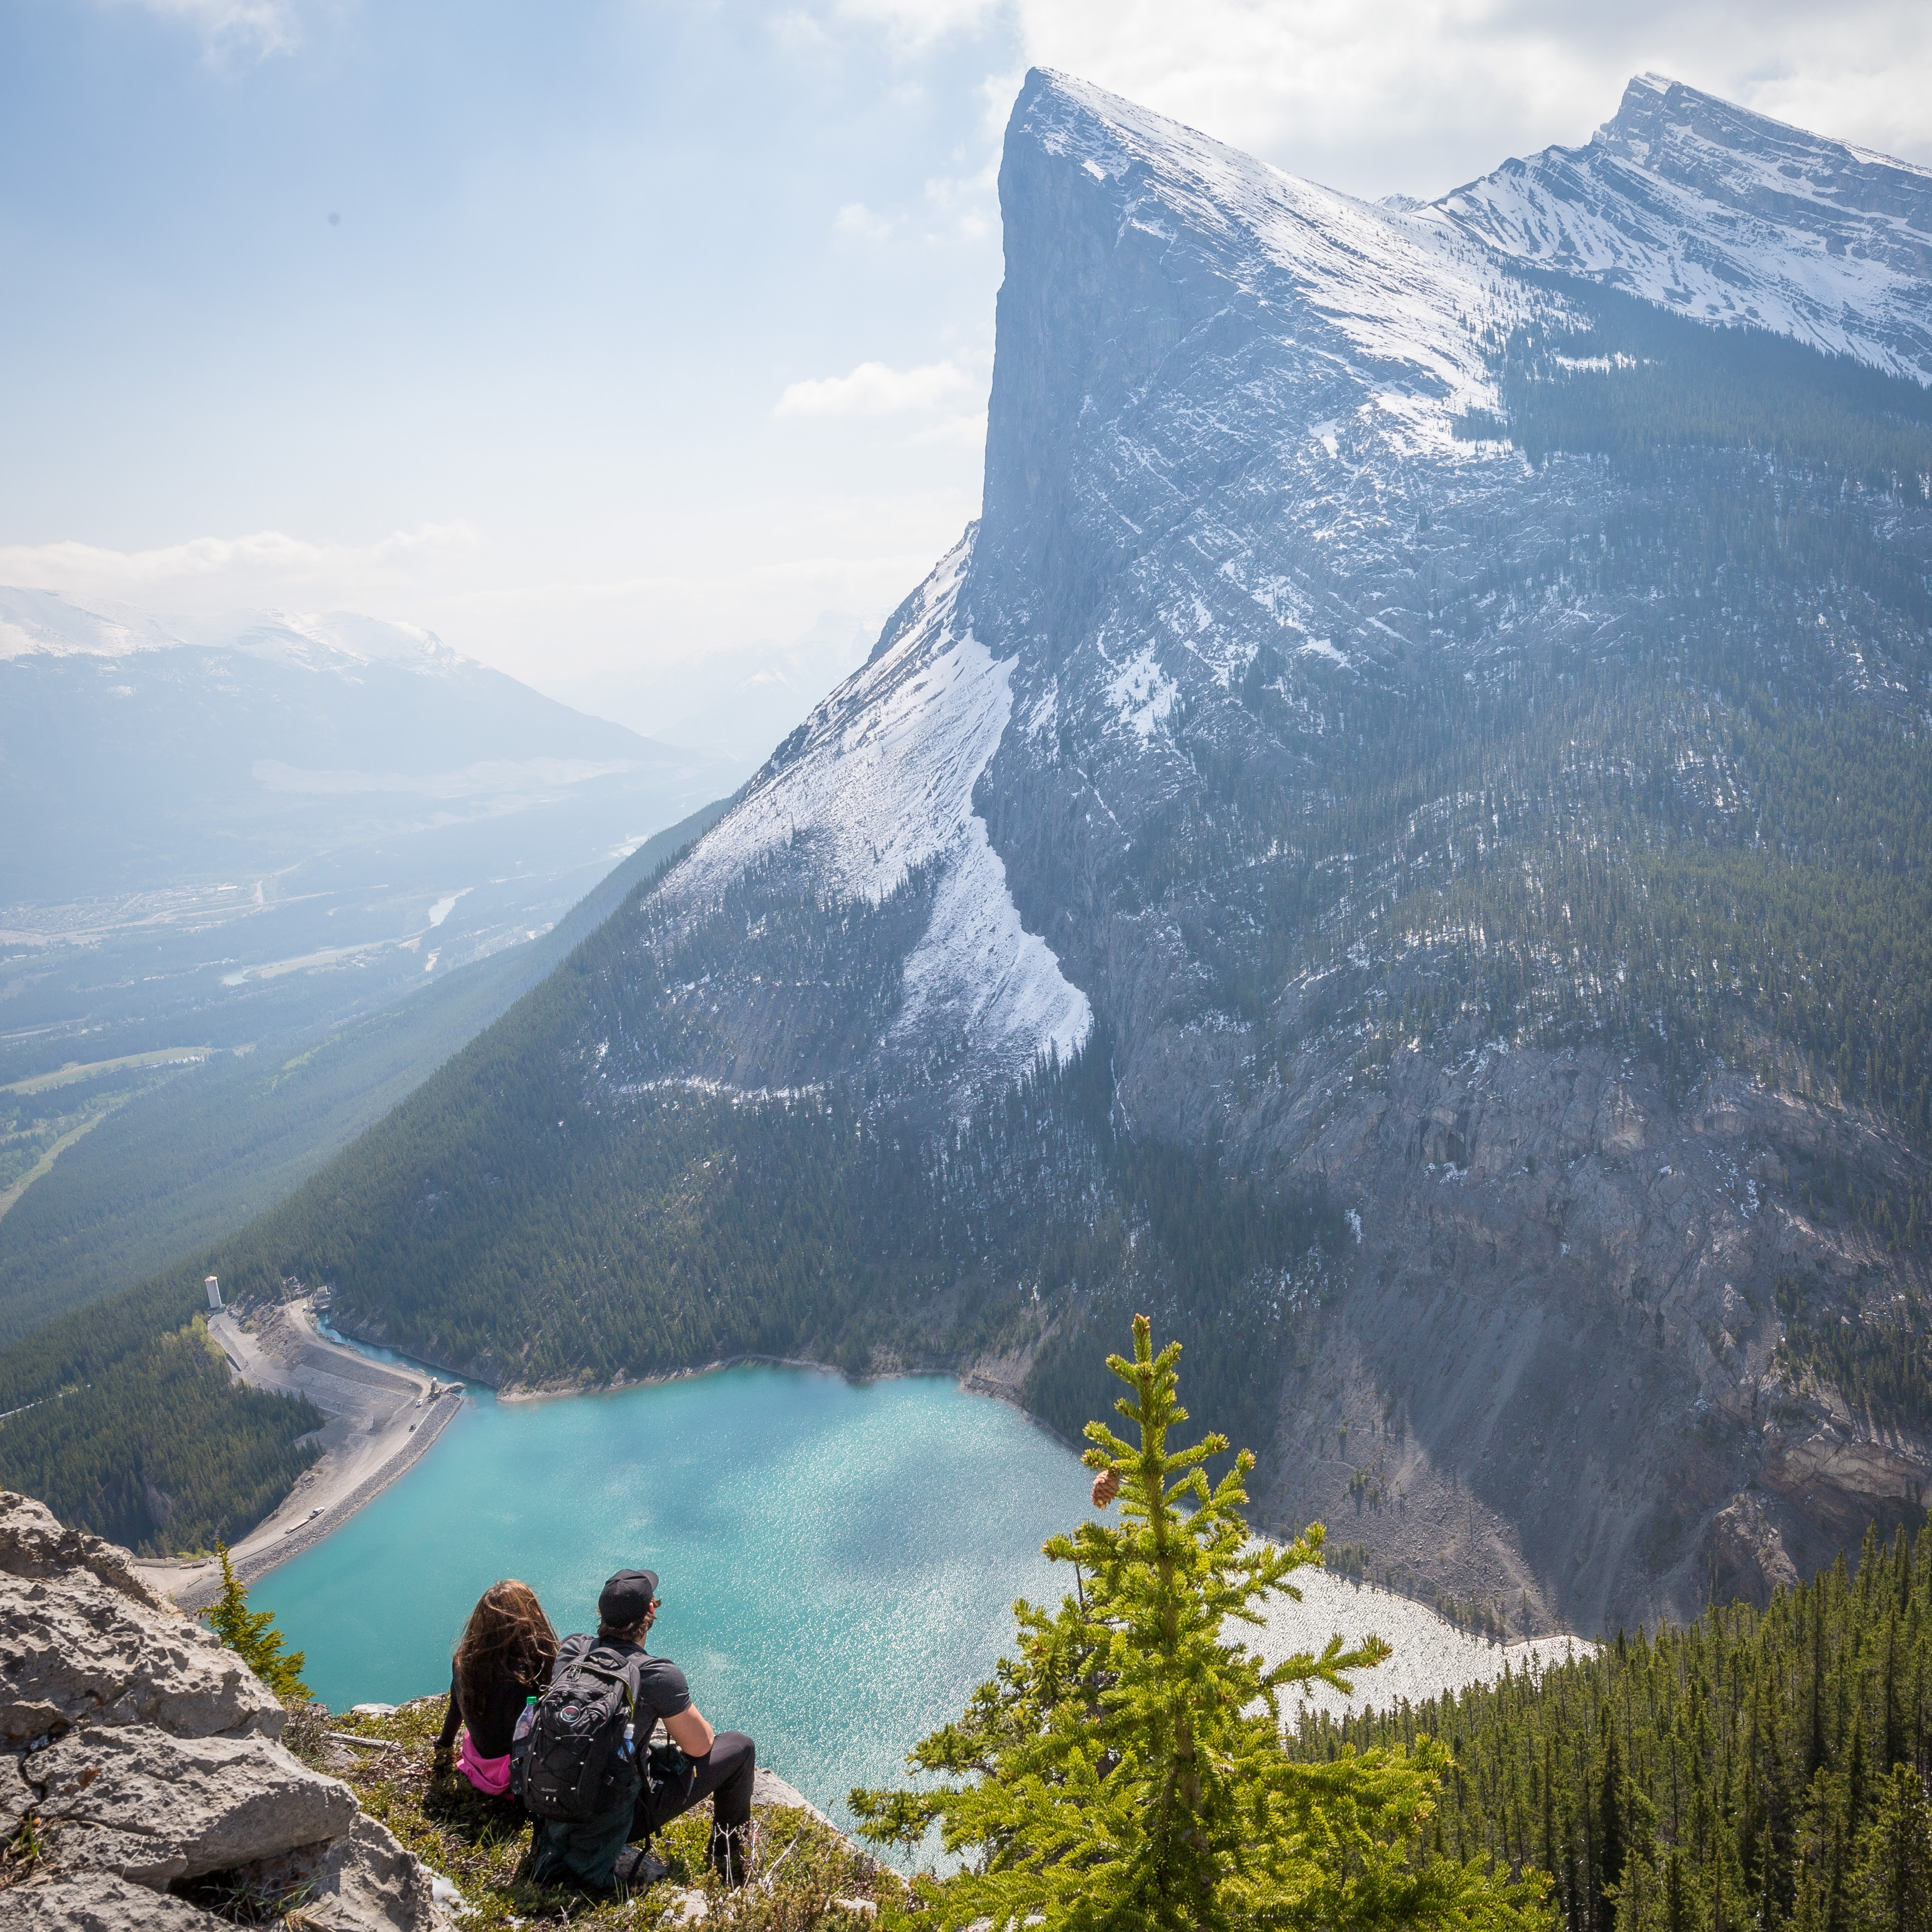 Two people sitting on a ledge high above a mountain lake in Canmore